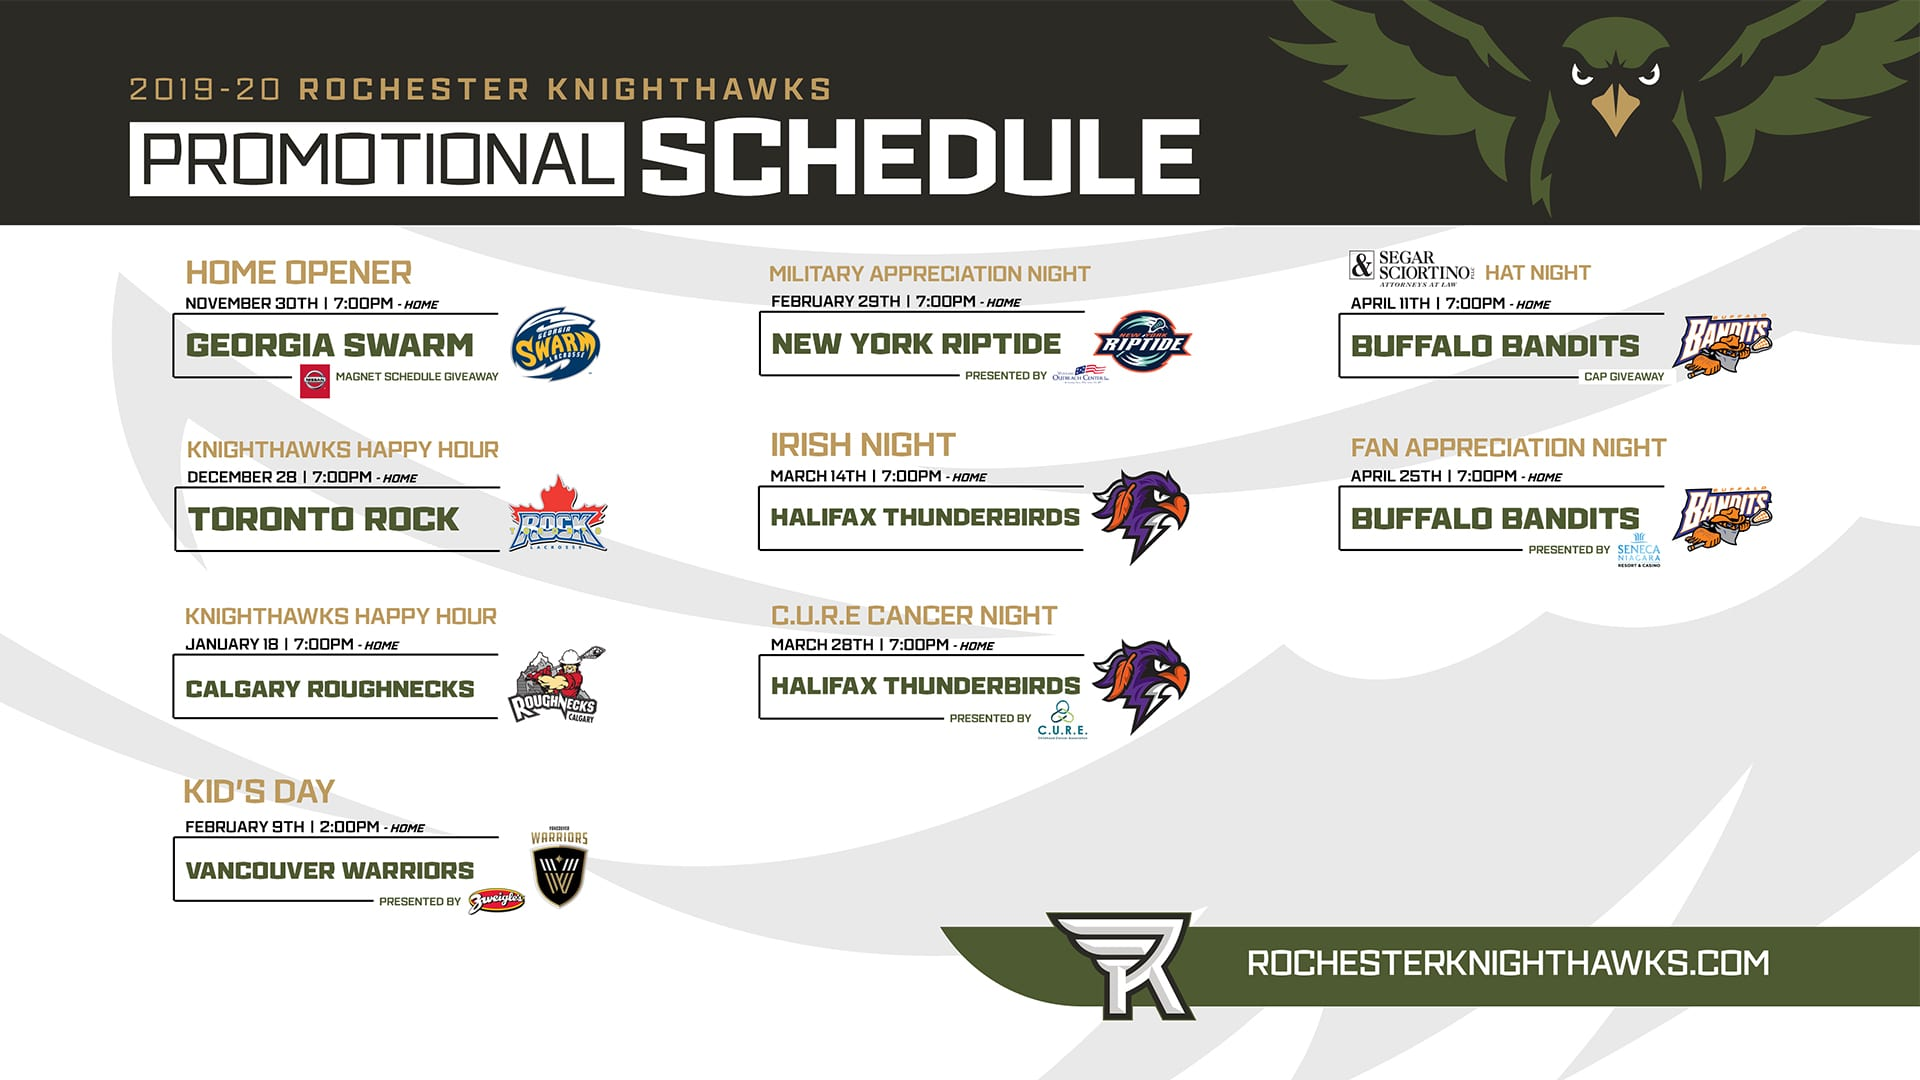 rochester knighthawks theme nights nll national lacrosse league